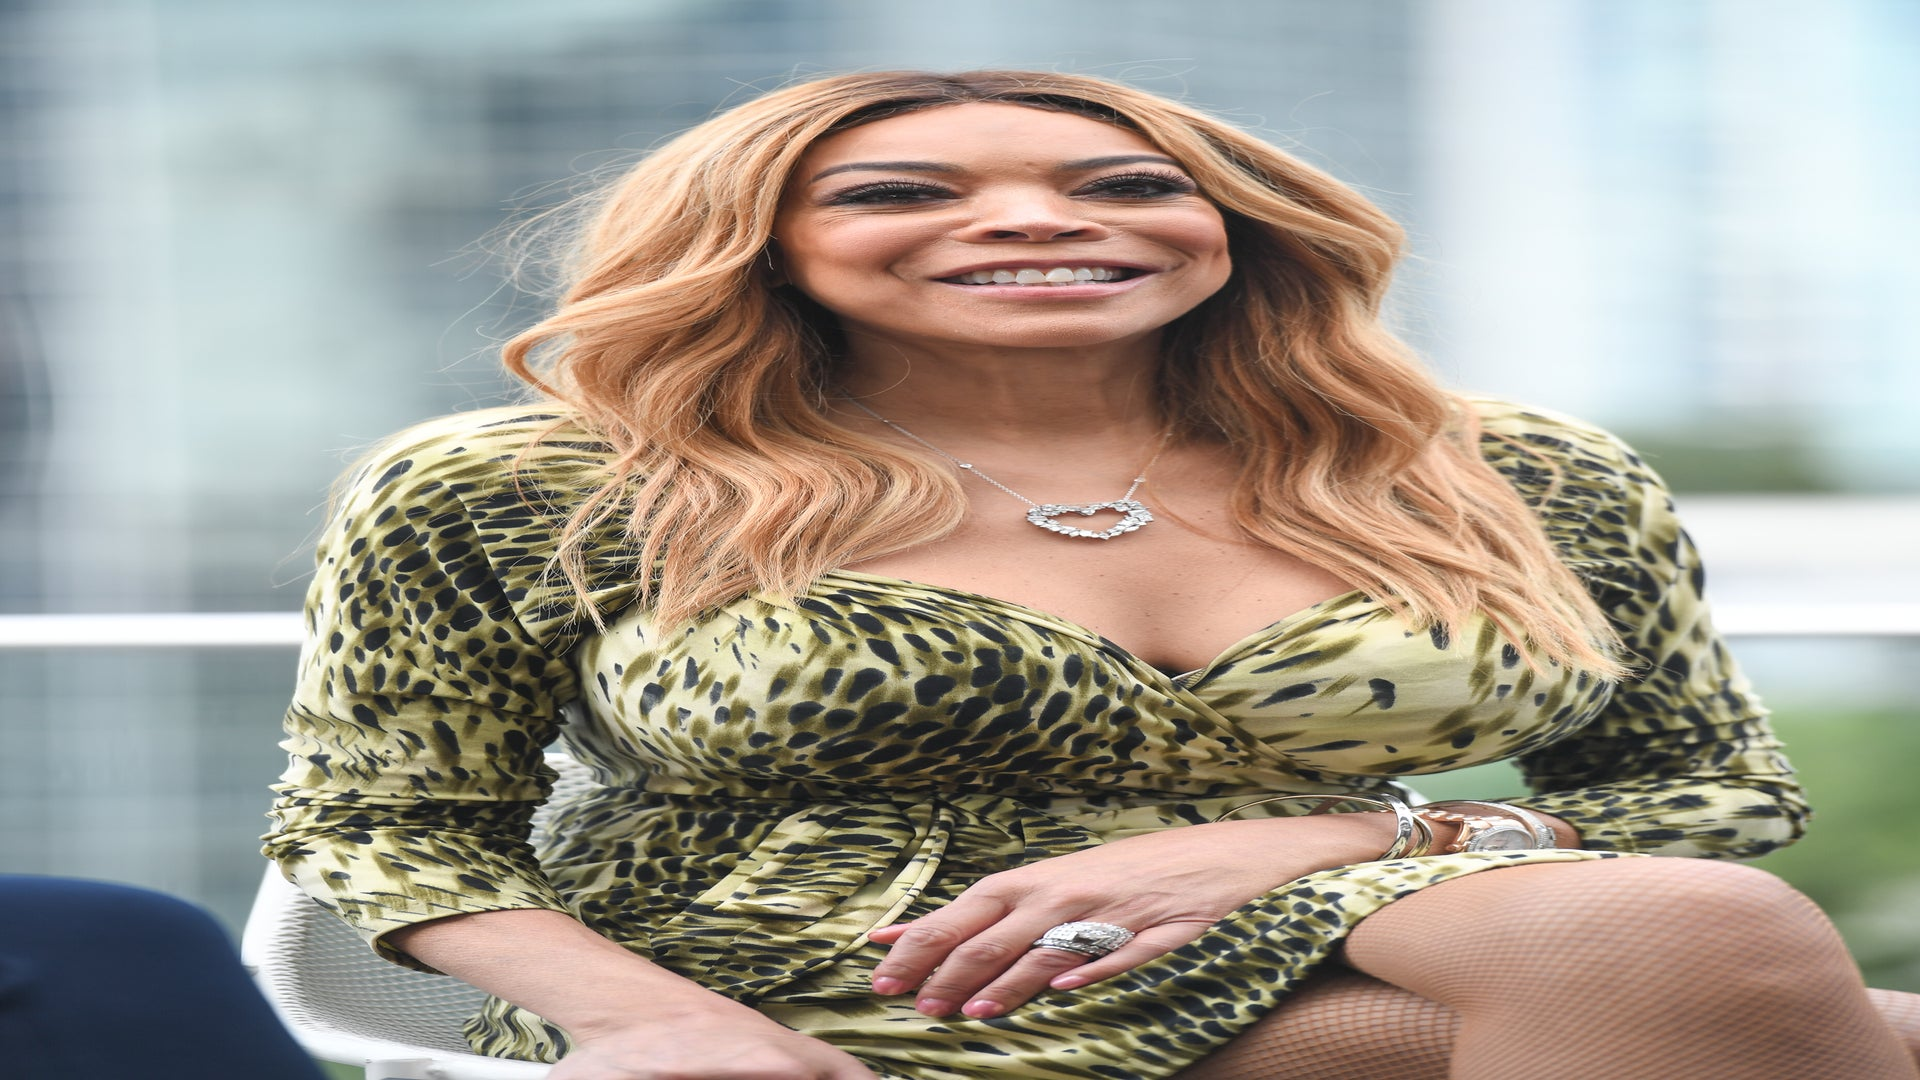 Wendy Williams Puts Show On Hiatus After Revealing Battle With Graves' Disease